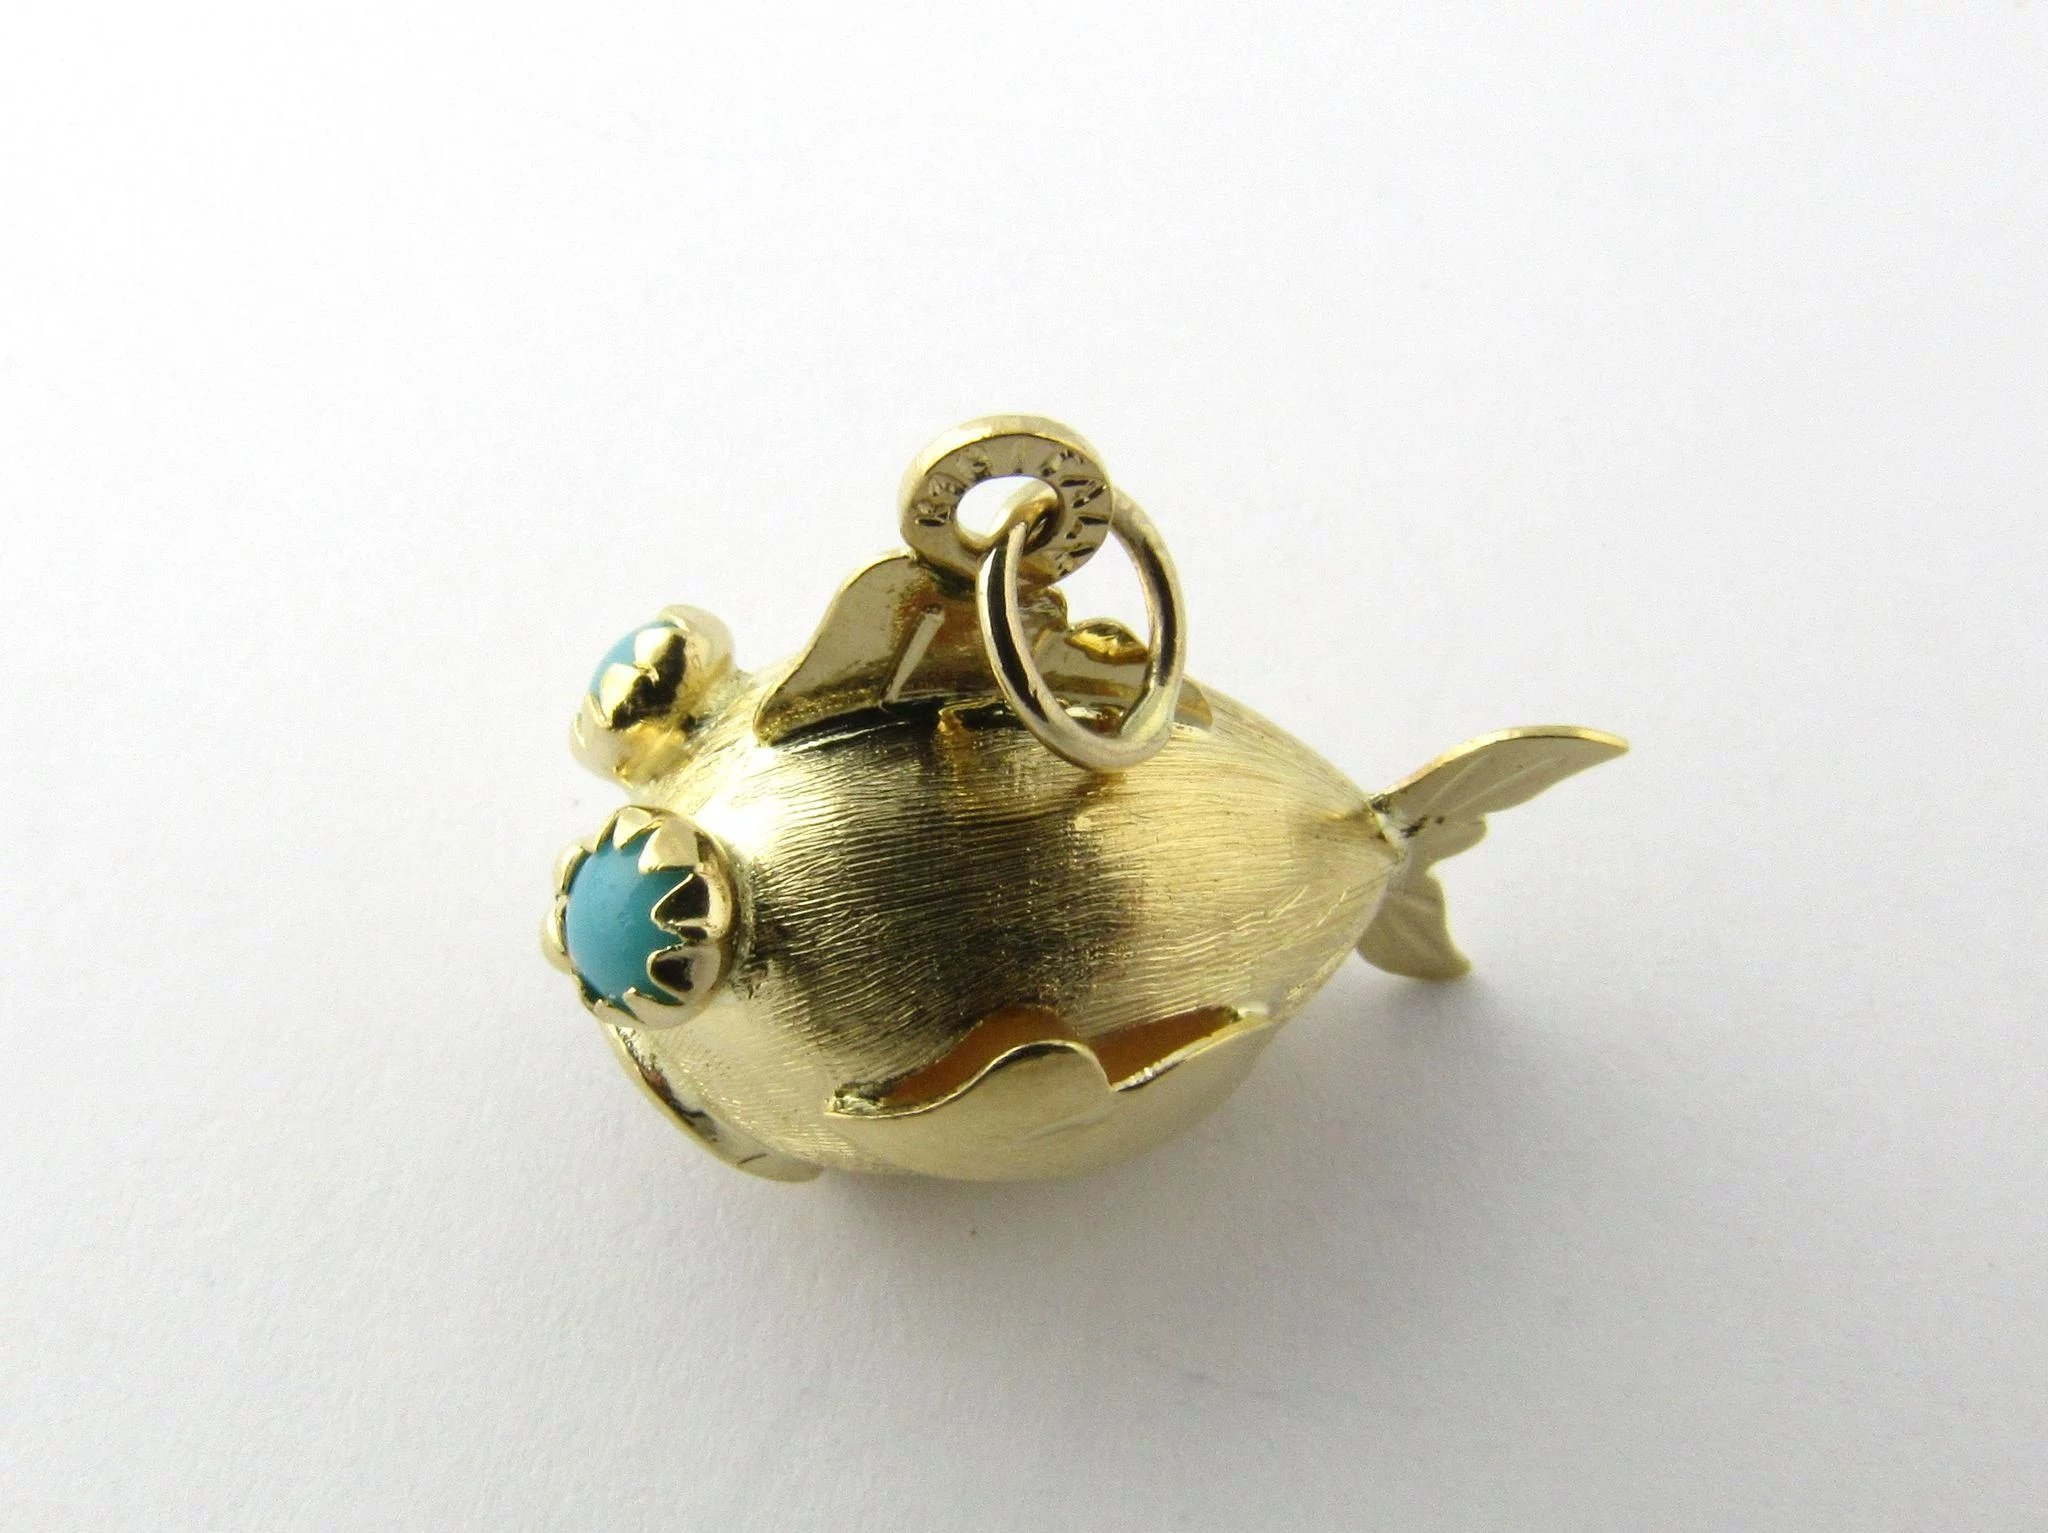 Vintage 18k yellow gold fish charm with turquoise eyes for Gold fish charm